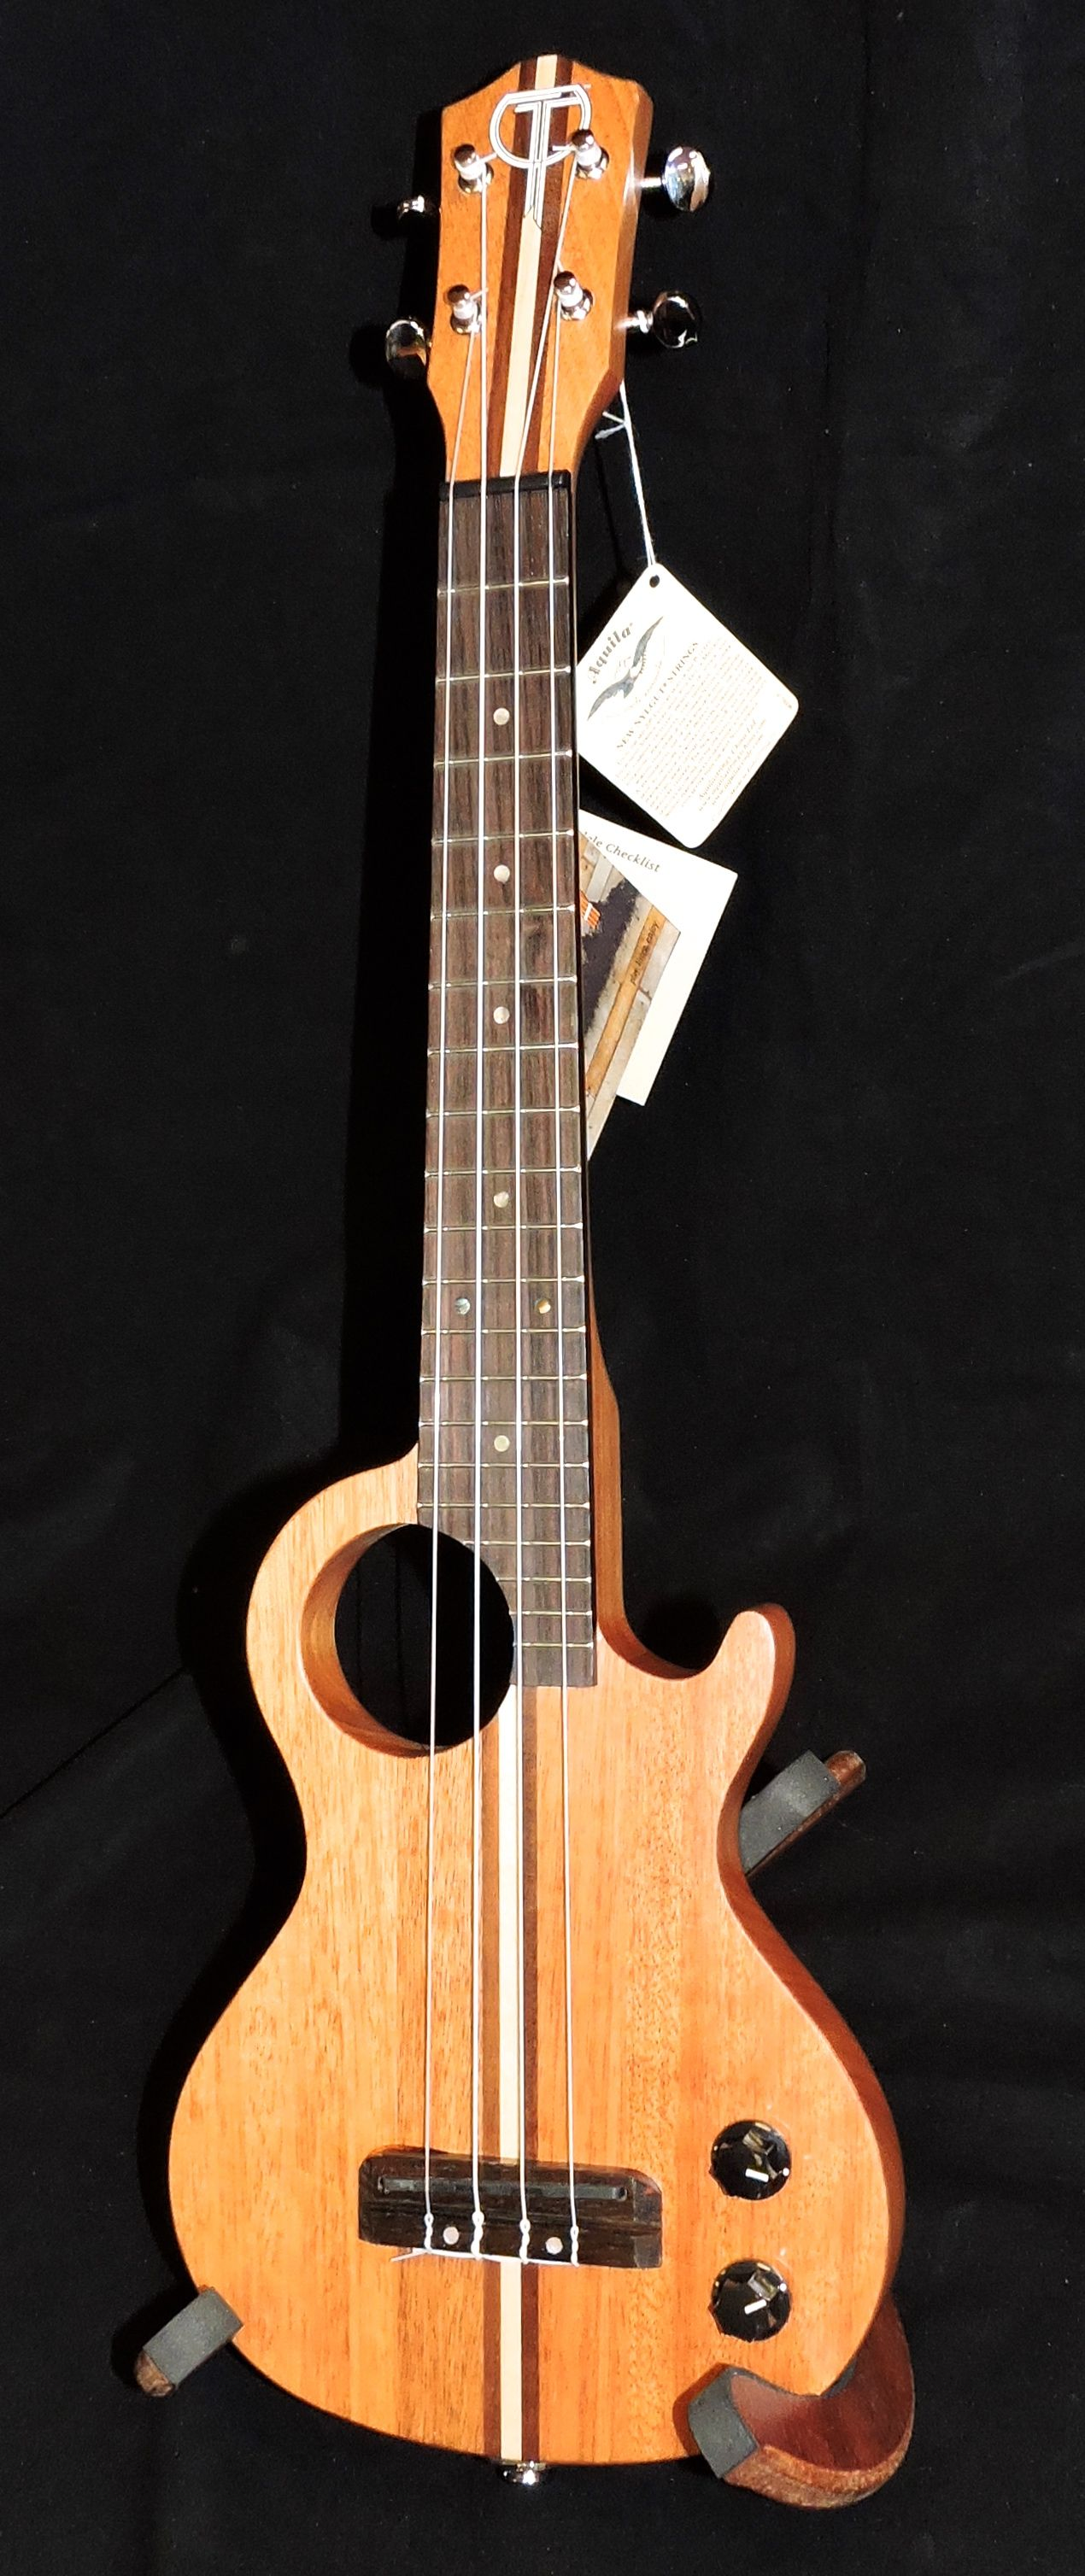 296 teton steu101t tenor solid body electric ukulele w mp3 headset input gig bag music. Black Bedroom Furniture Sets. Home Design Ideas